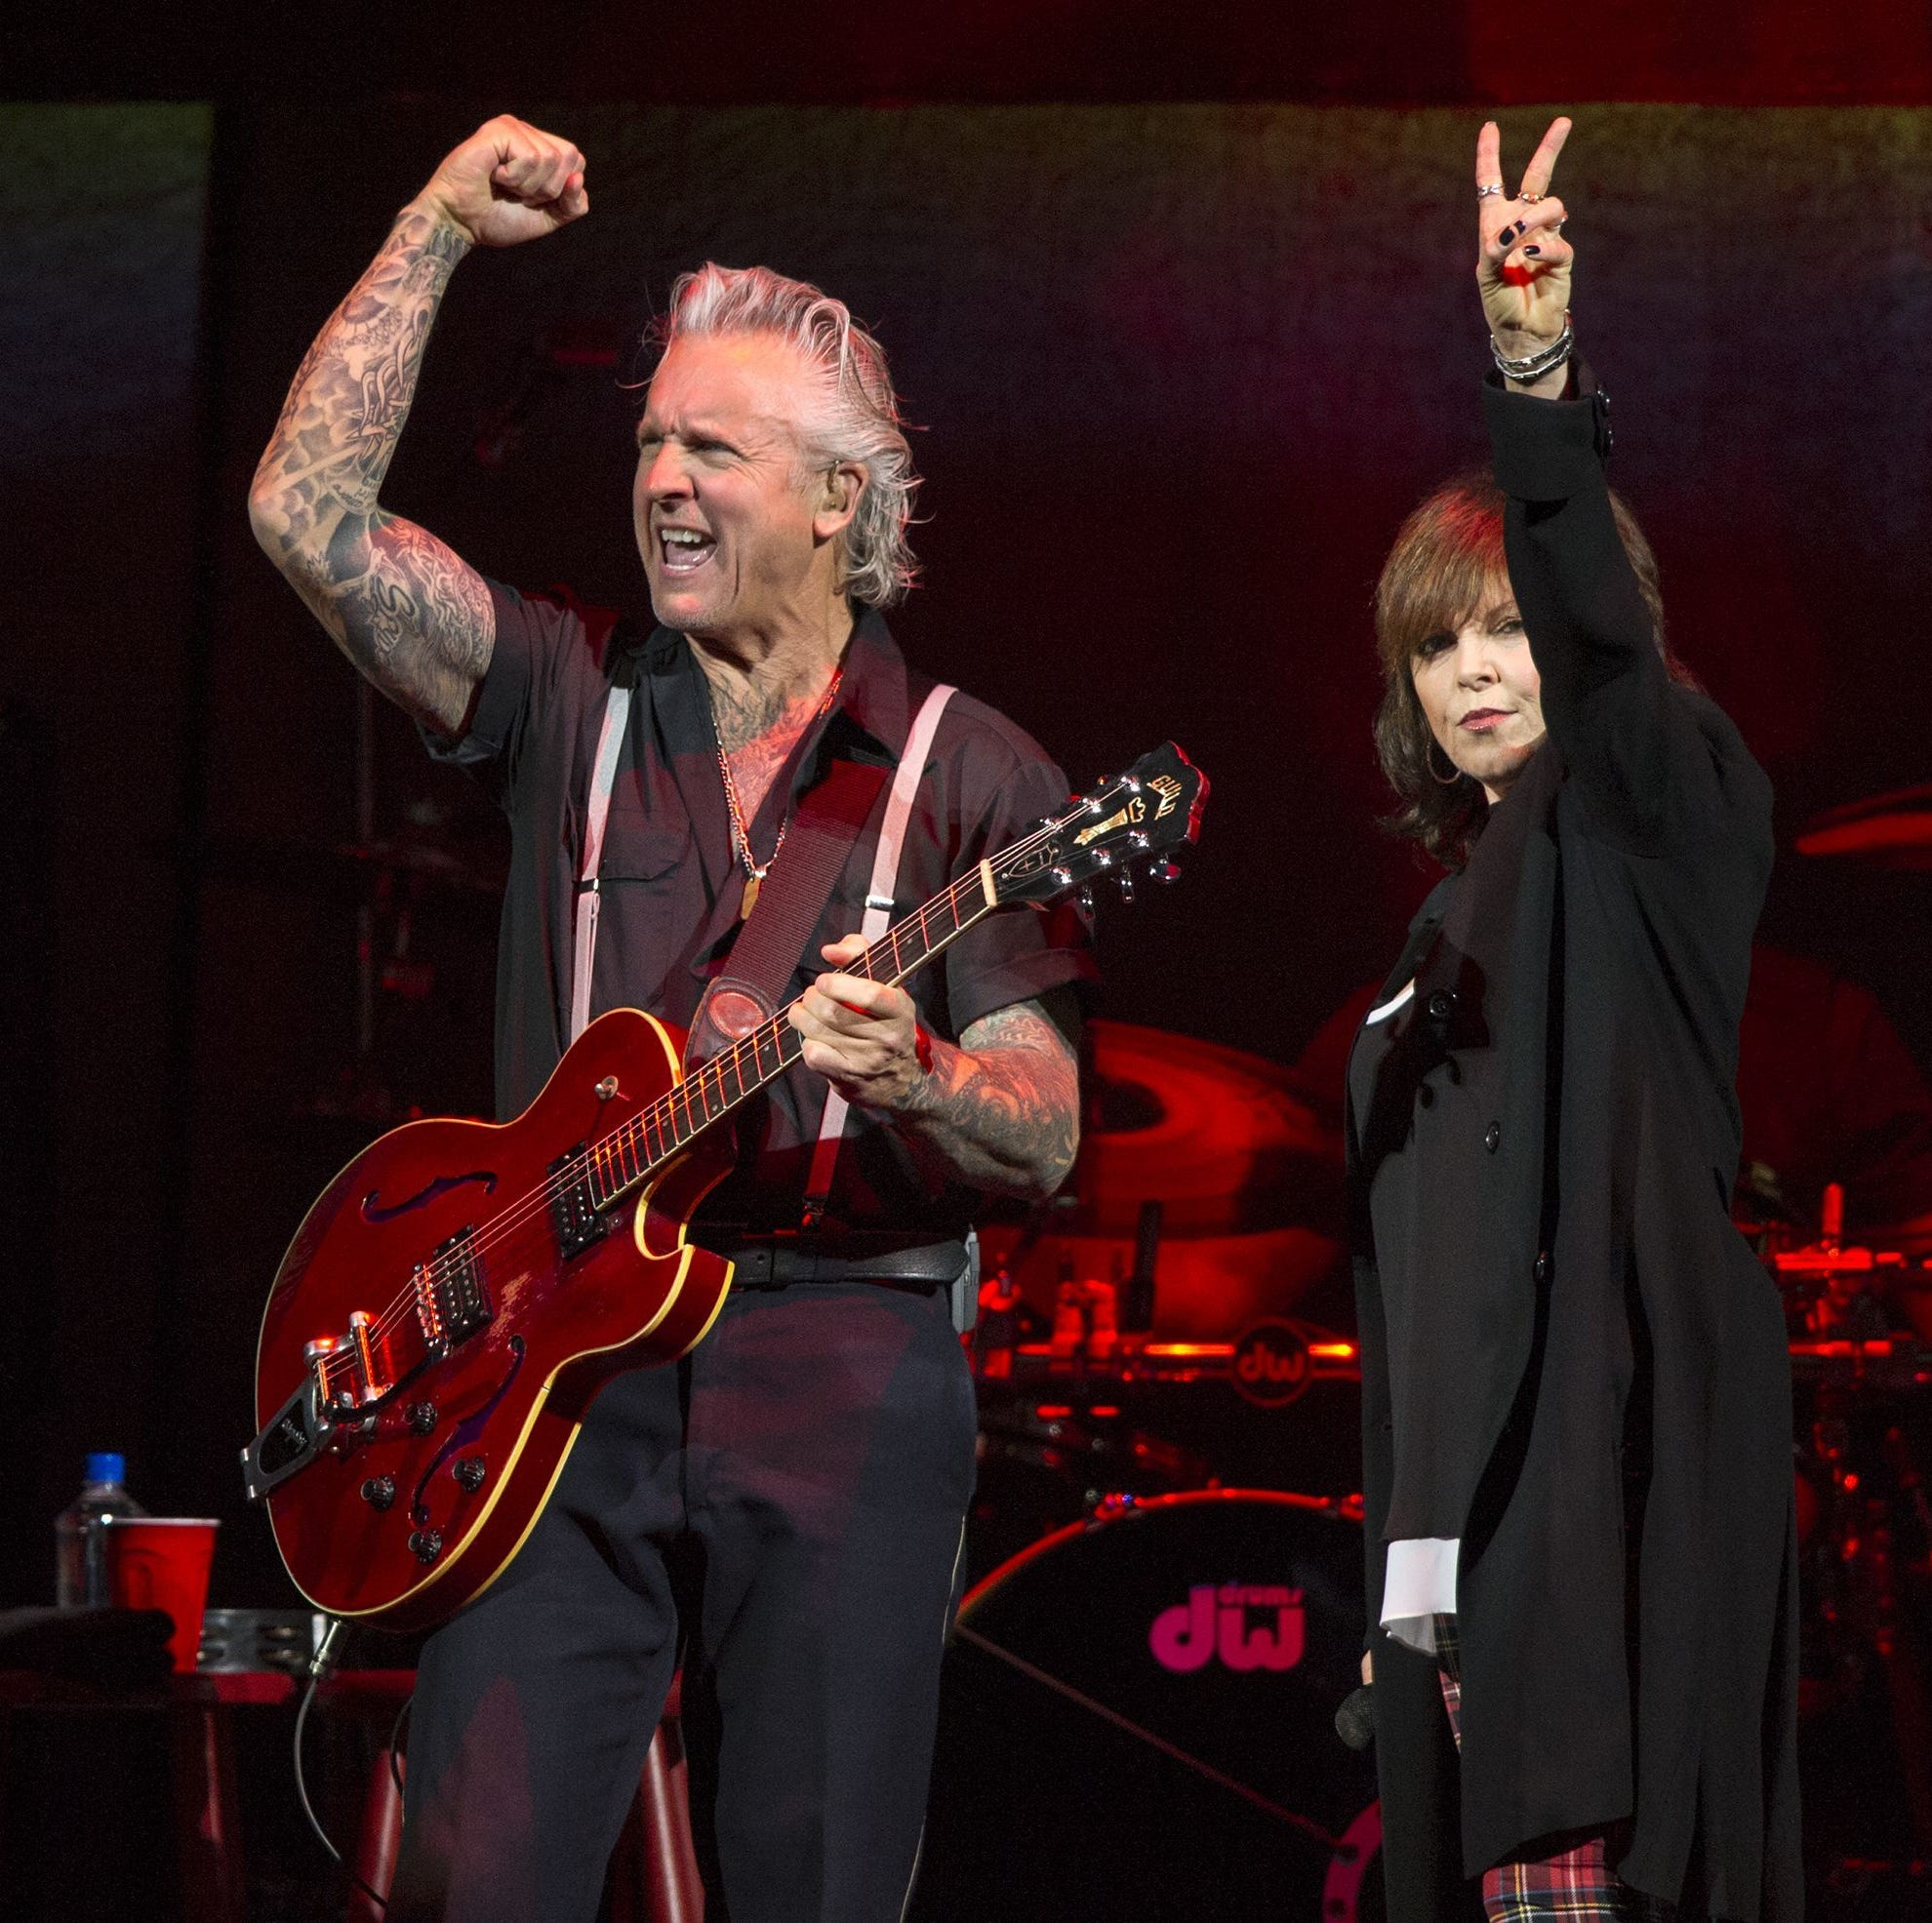 Pat Benatar and Neil Giraldo to play Evansville show